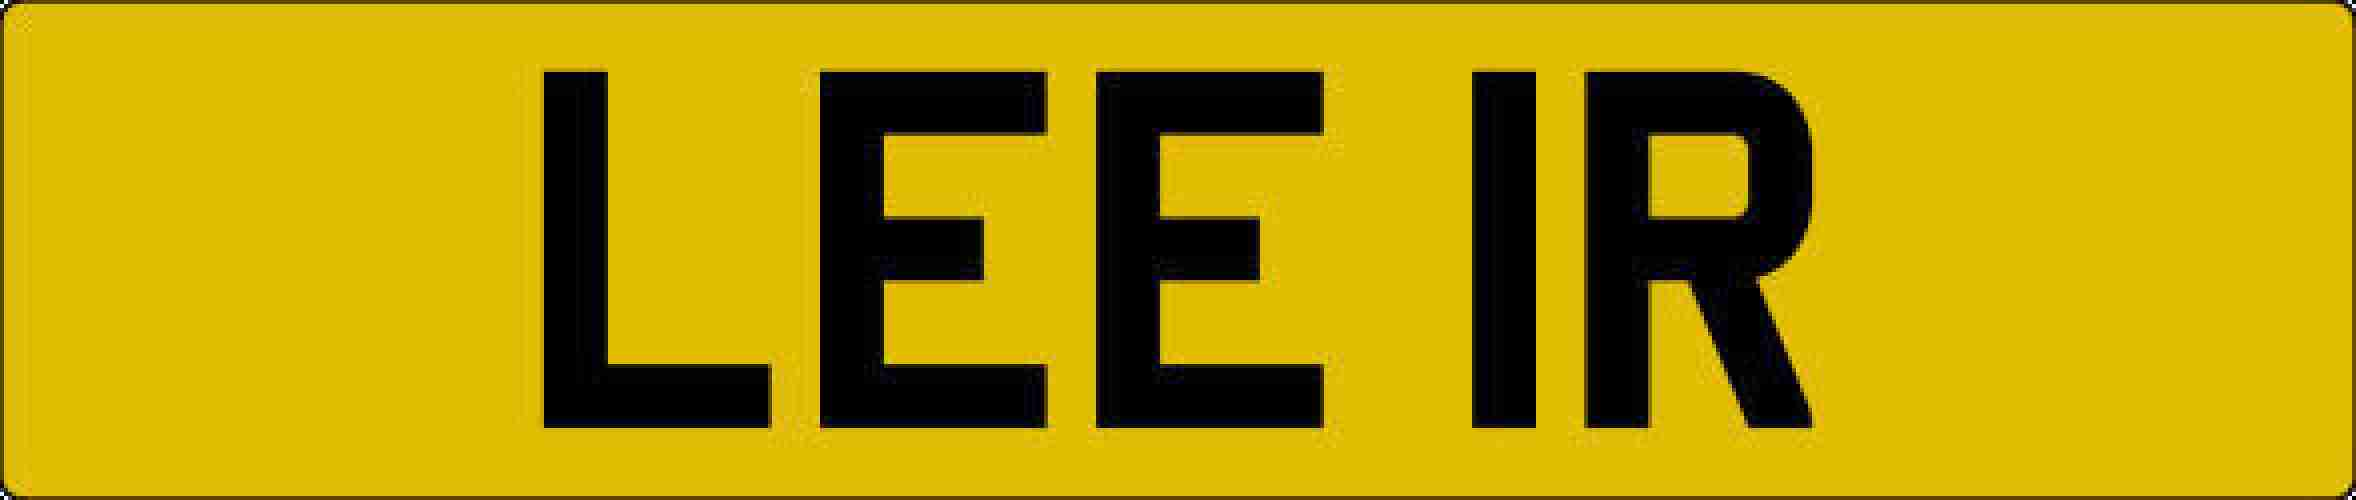 PRIVATE NUMBER PLATE FOR SALE ** LEE IR **